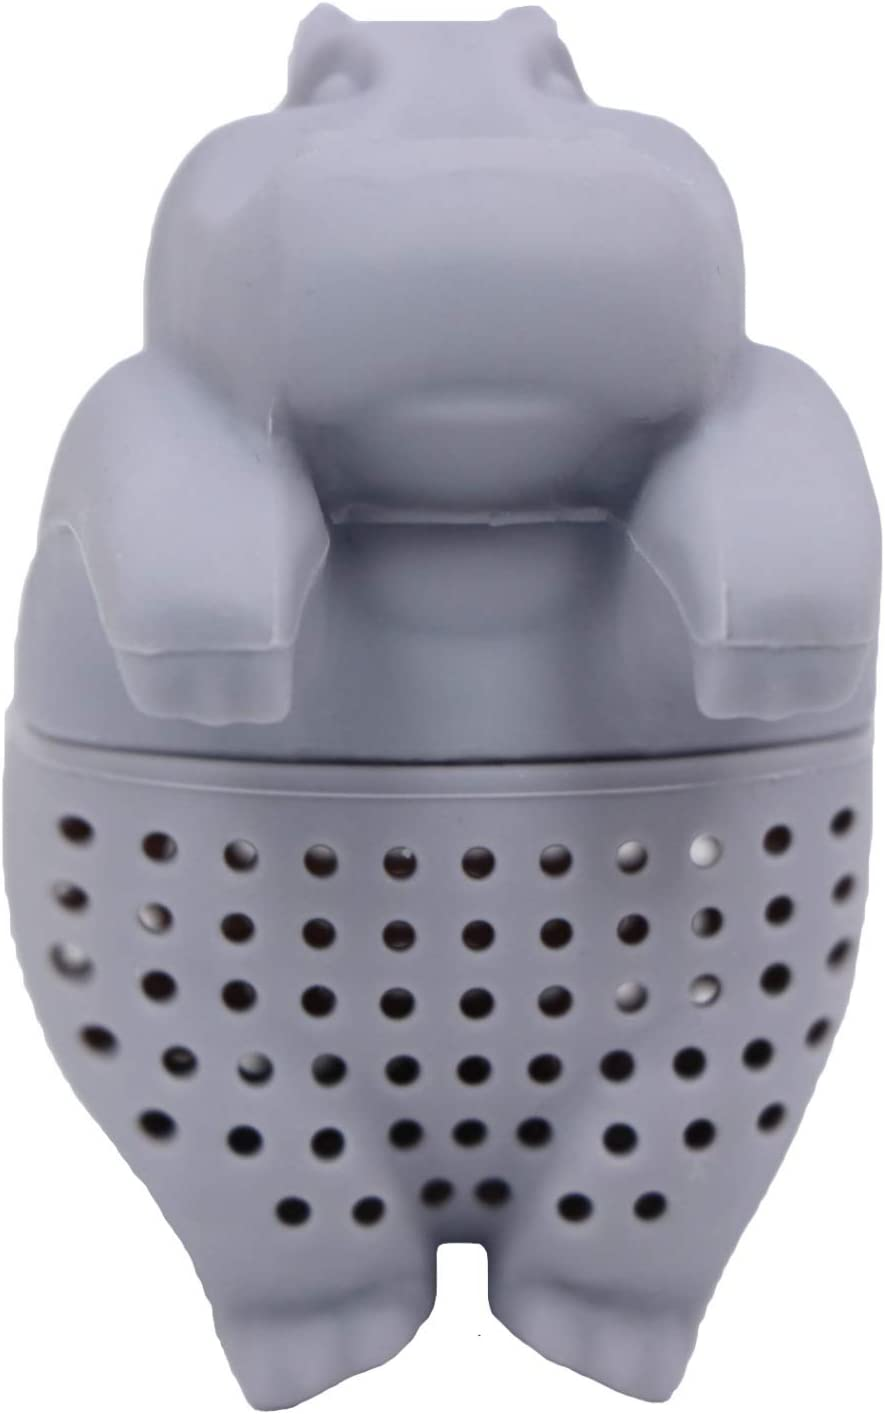 Vitrix Kitchenware Silicone Tea Infuser - Reusable Tea Diffuser Filter Strainer Made From 100% Food Grade Silicone - Cute & Funny Tea Infusers For Loose Leaf Tea Grey Hippo - Bring On When Travelling